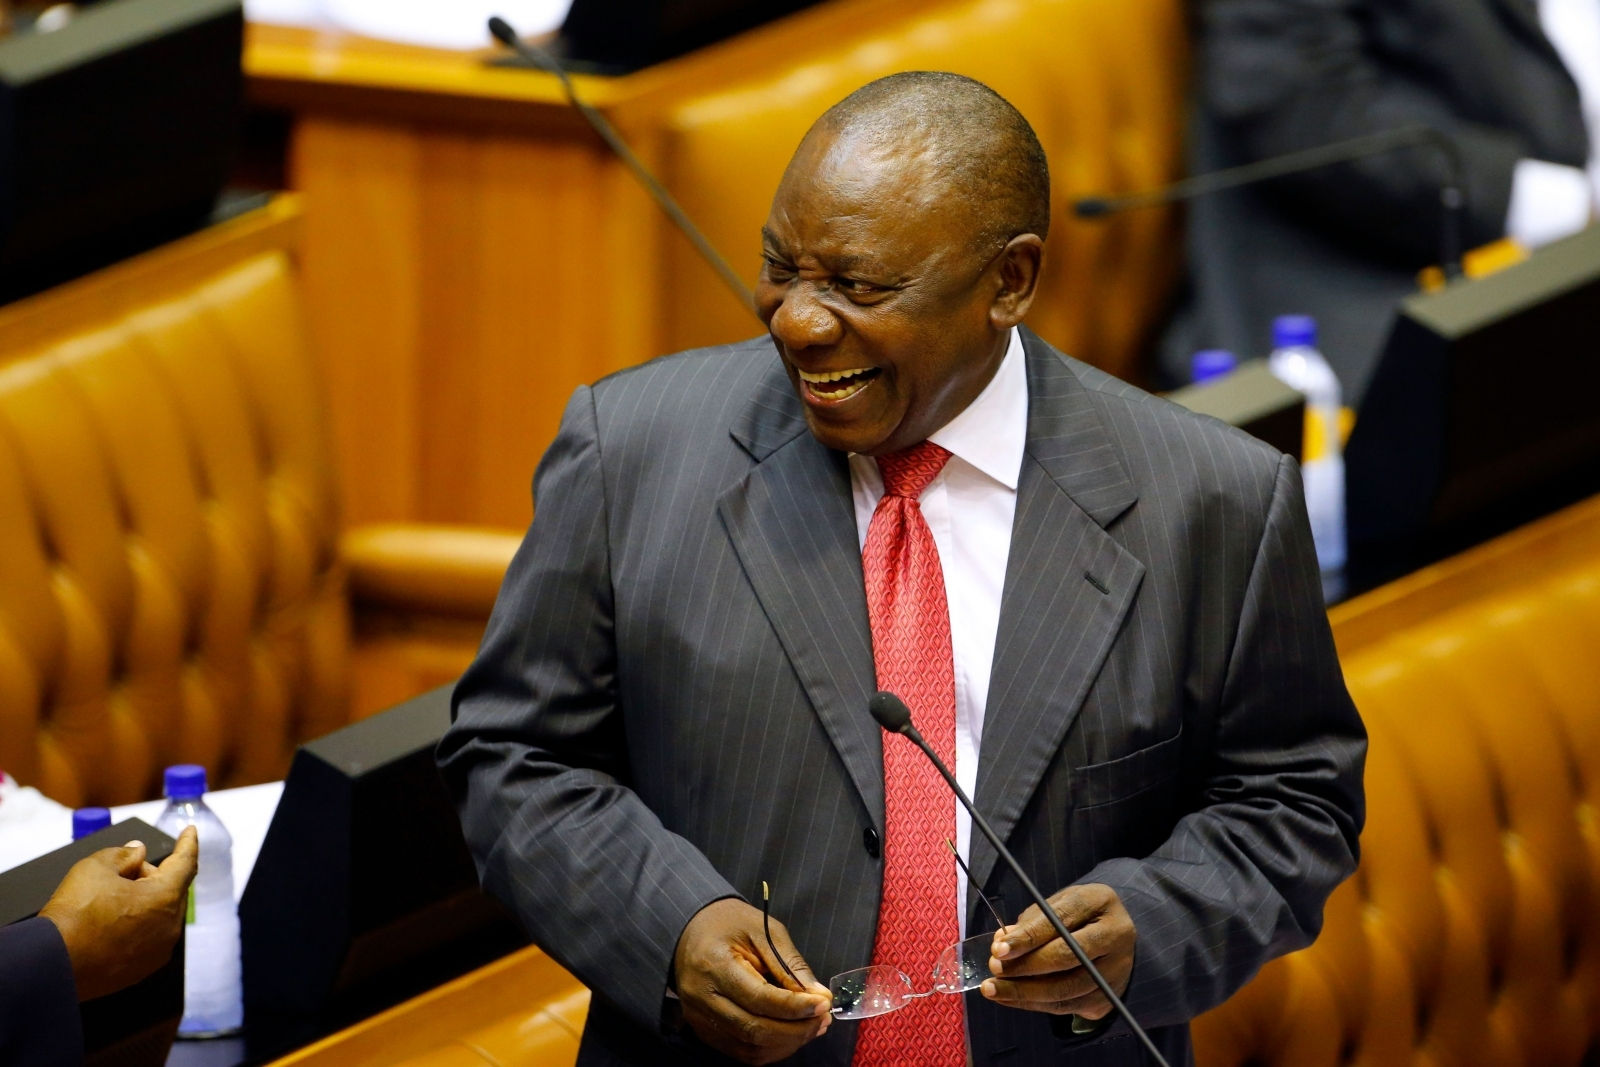 Zuma's Resignation: Cyril Ramaphosa Is Now President Of South Africa